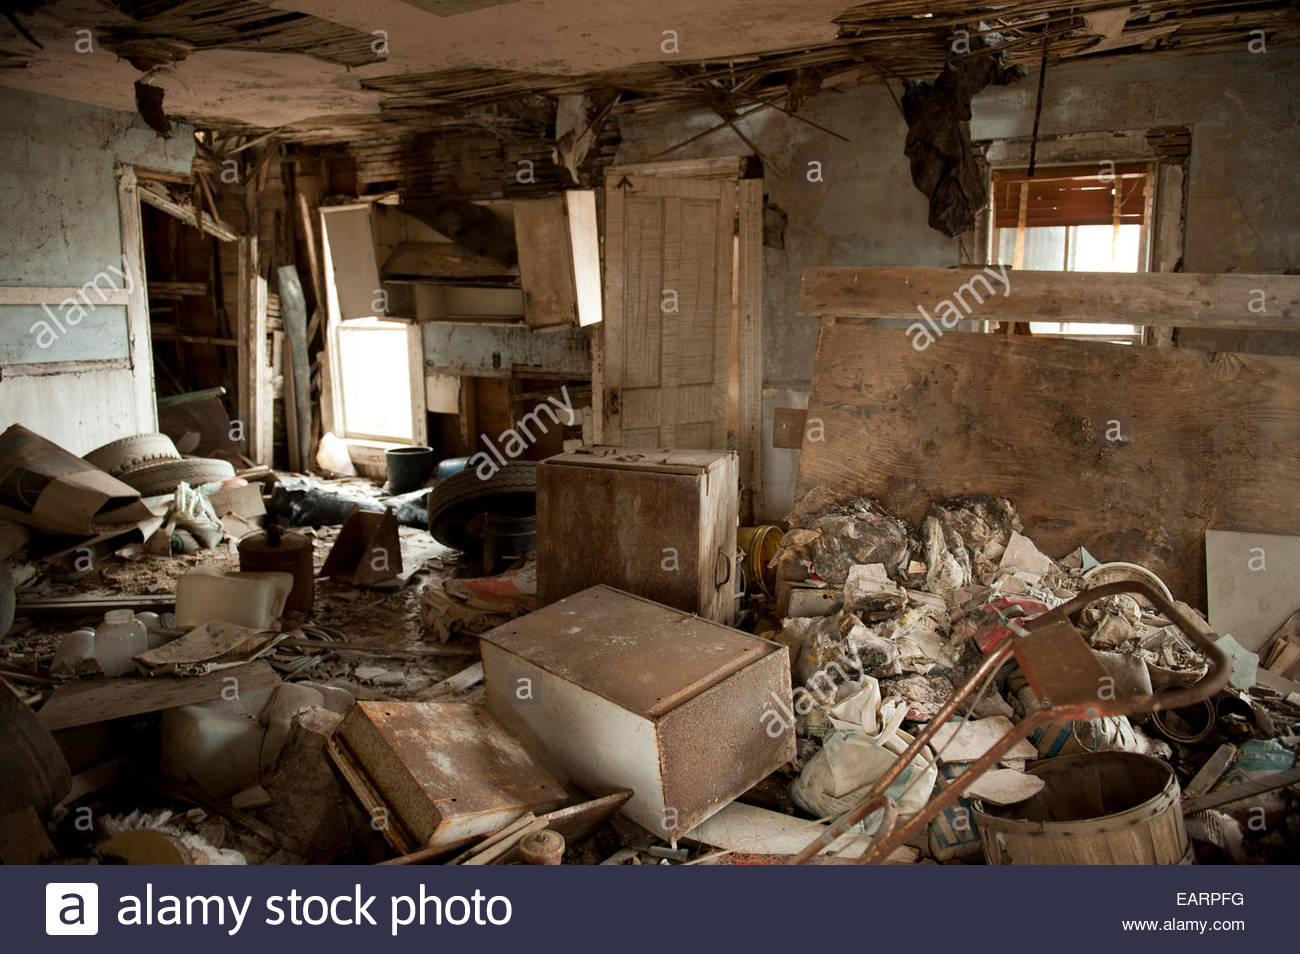 An abandoned house filled with junk. - Stock Image